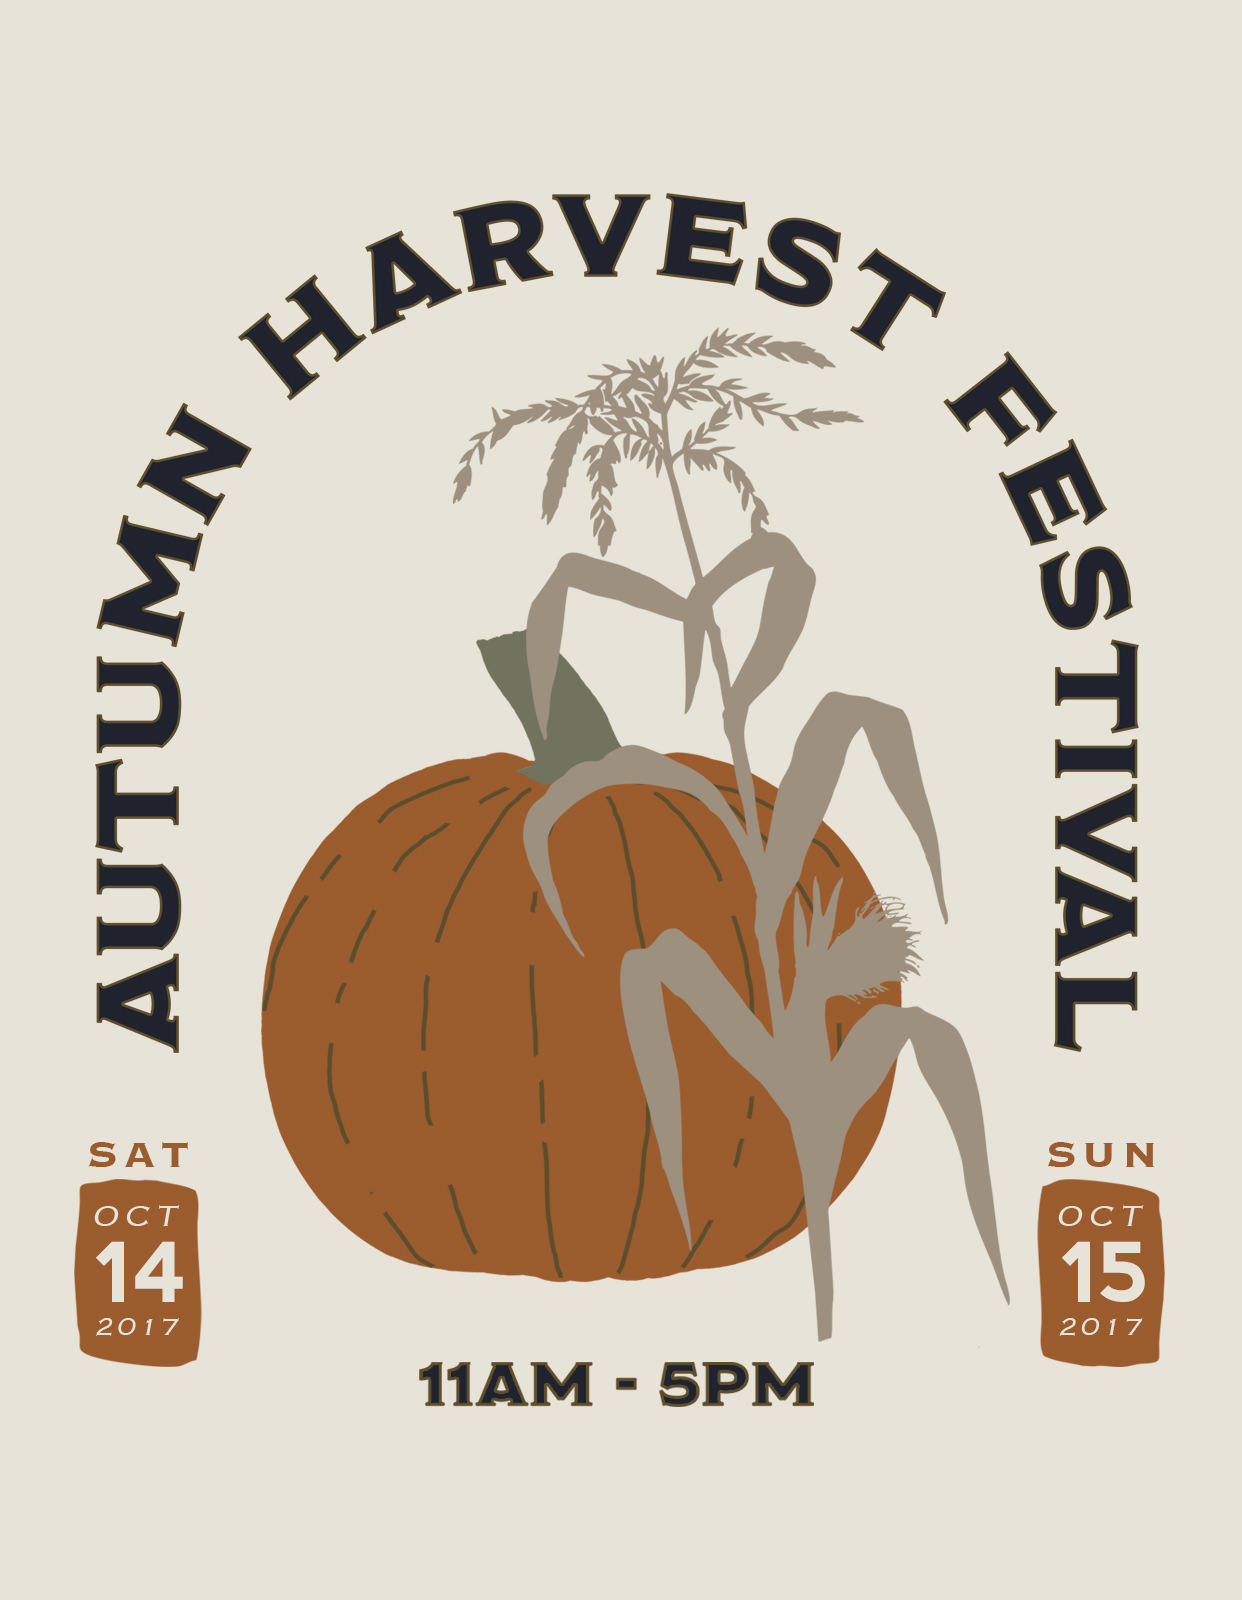 autumn harvest festival 2017